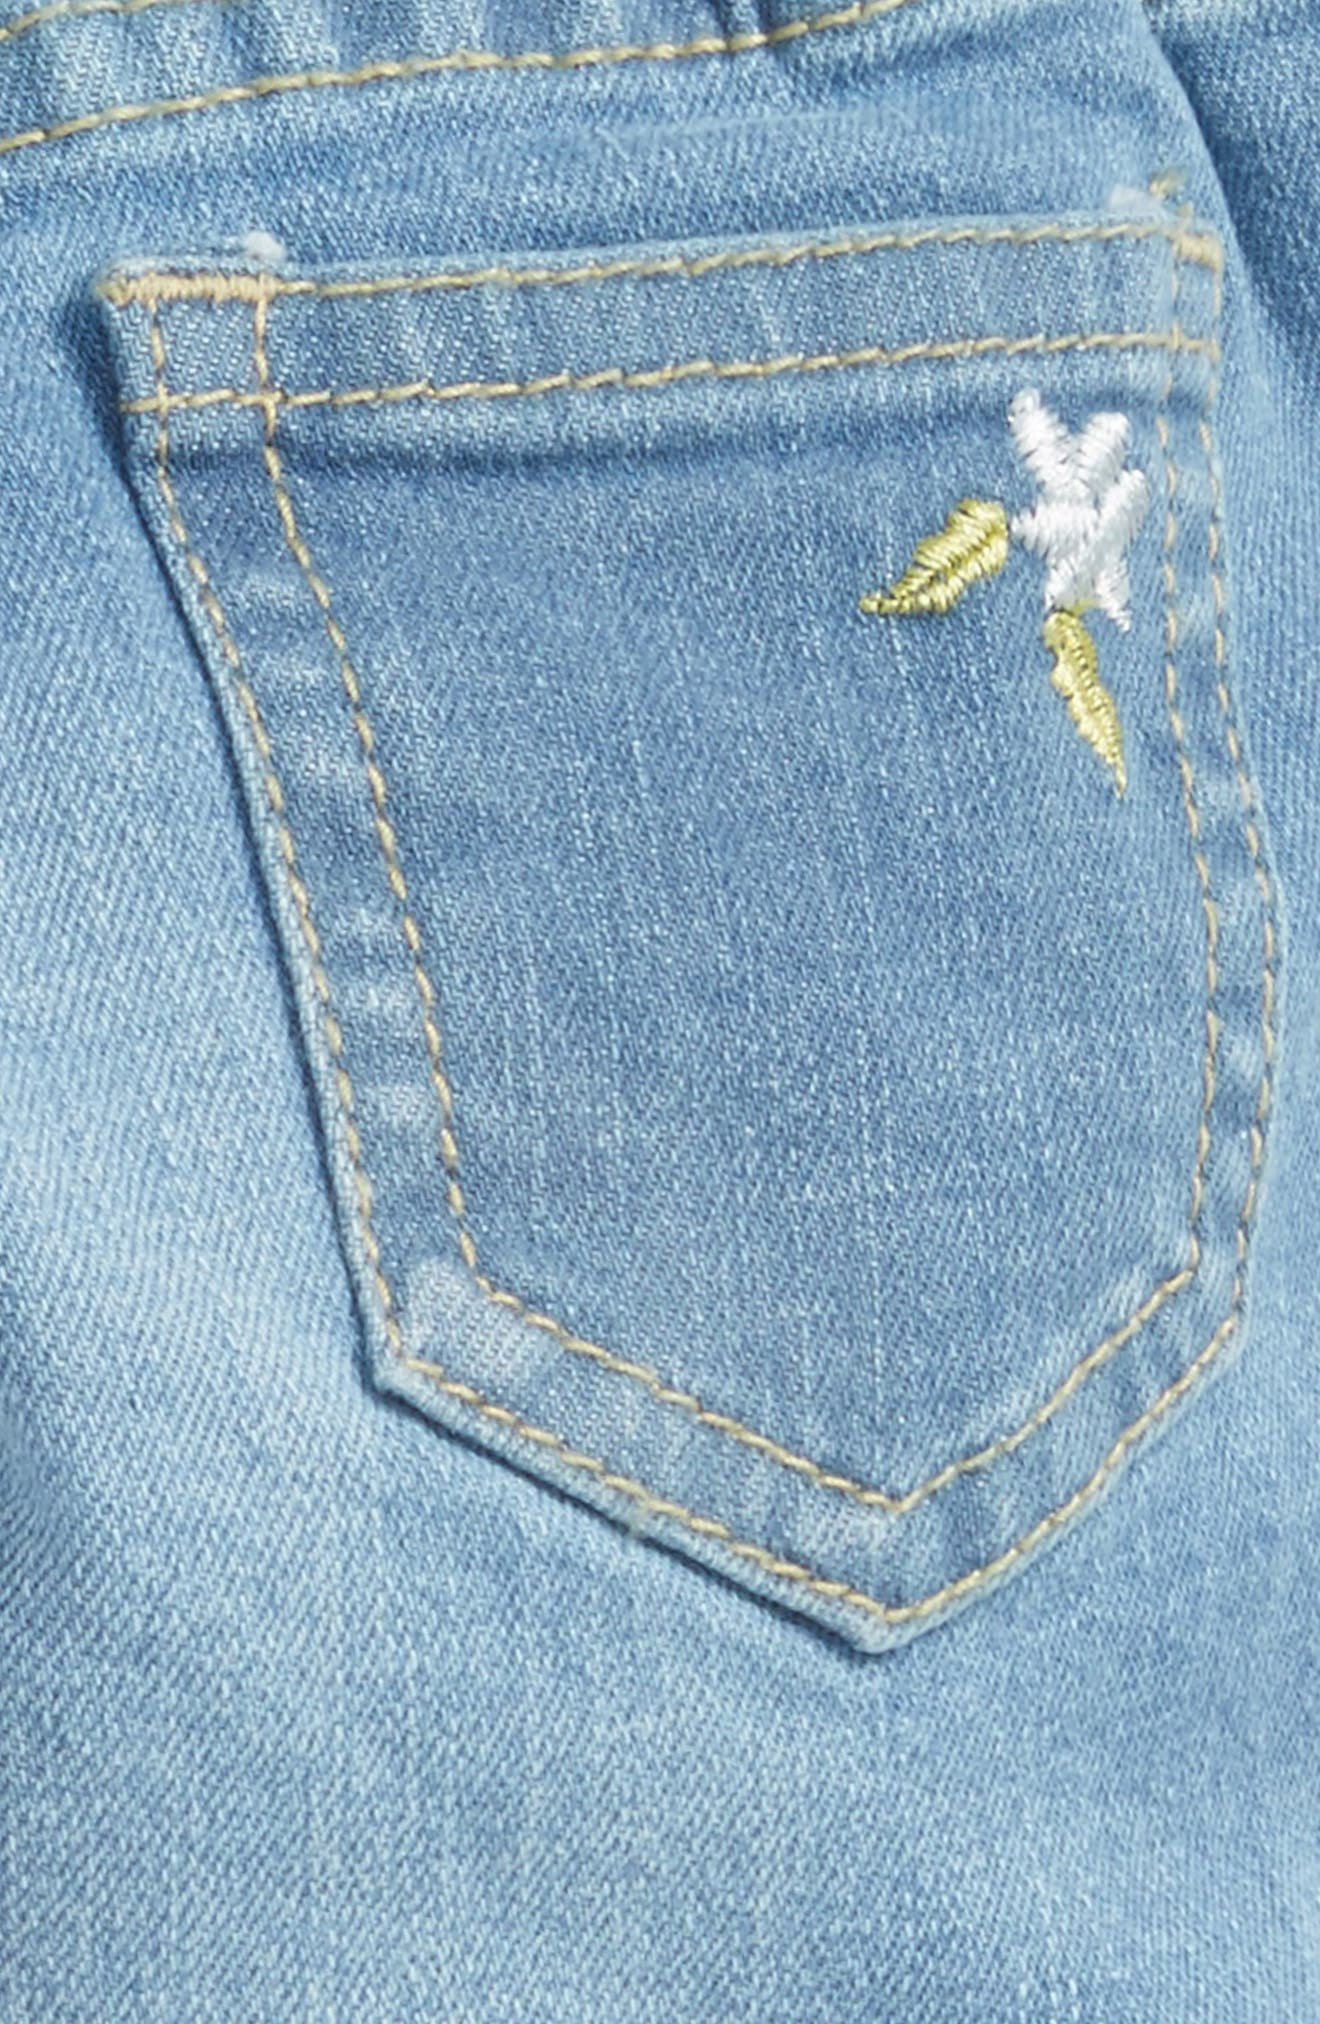 Taylor Embroidered Jeans,                             Alternate thumbnail 3, color,                             Medium Wash